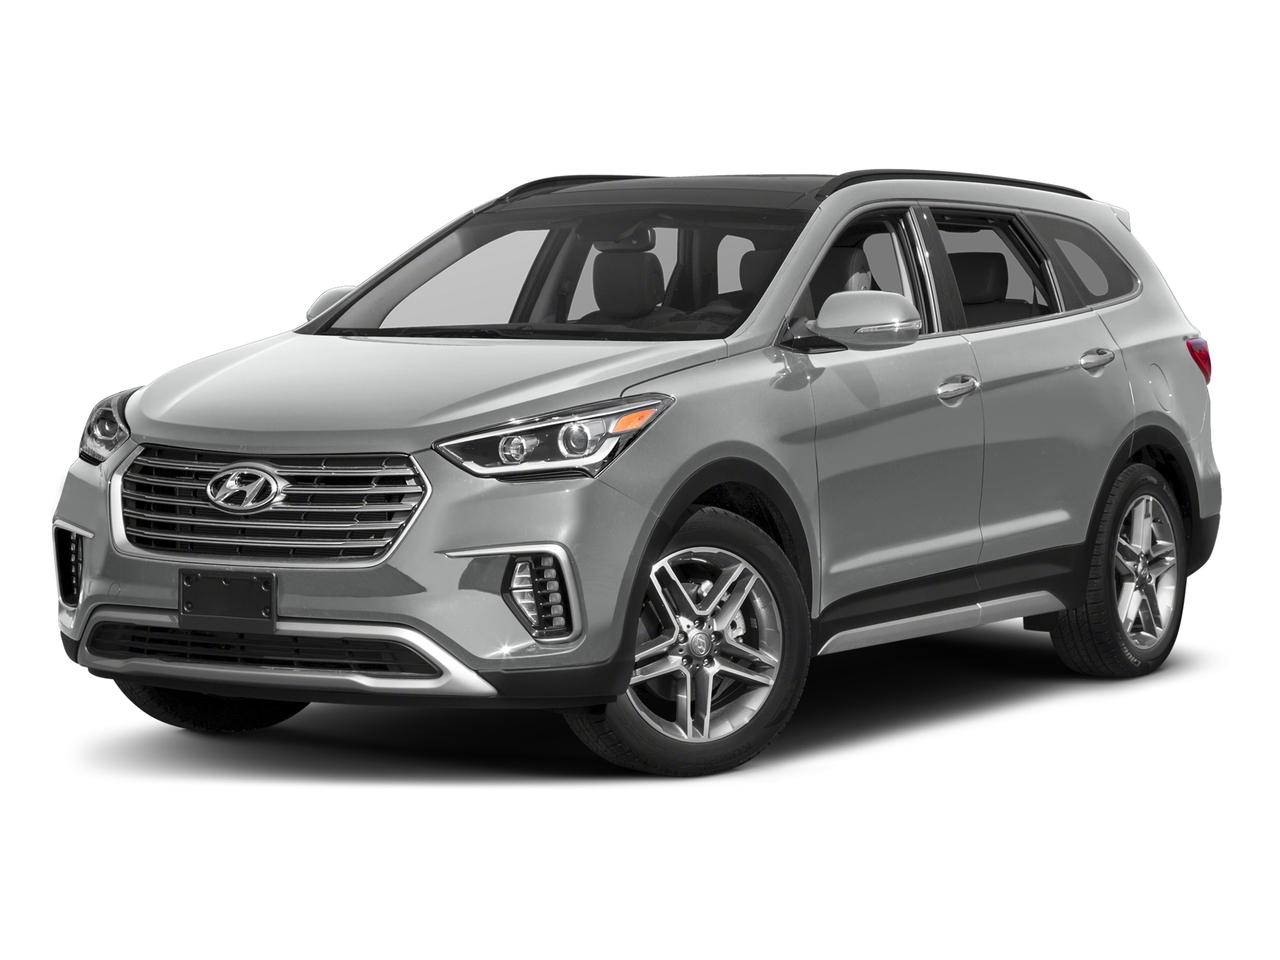 2017 Hyundai Santa Fe Vehicle Photo in Odessa, TX 79762